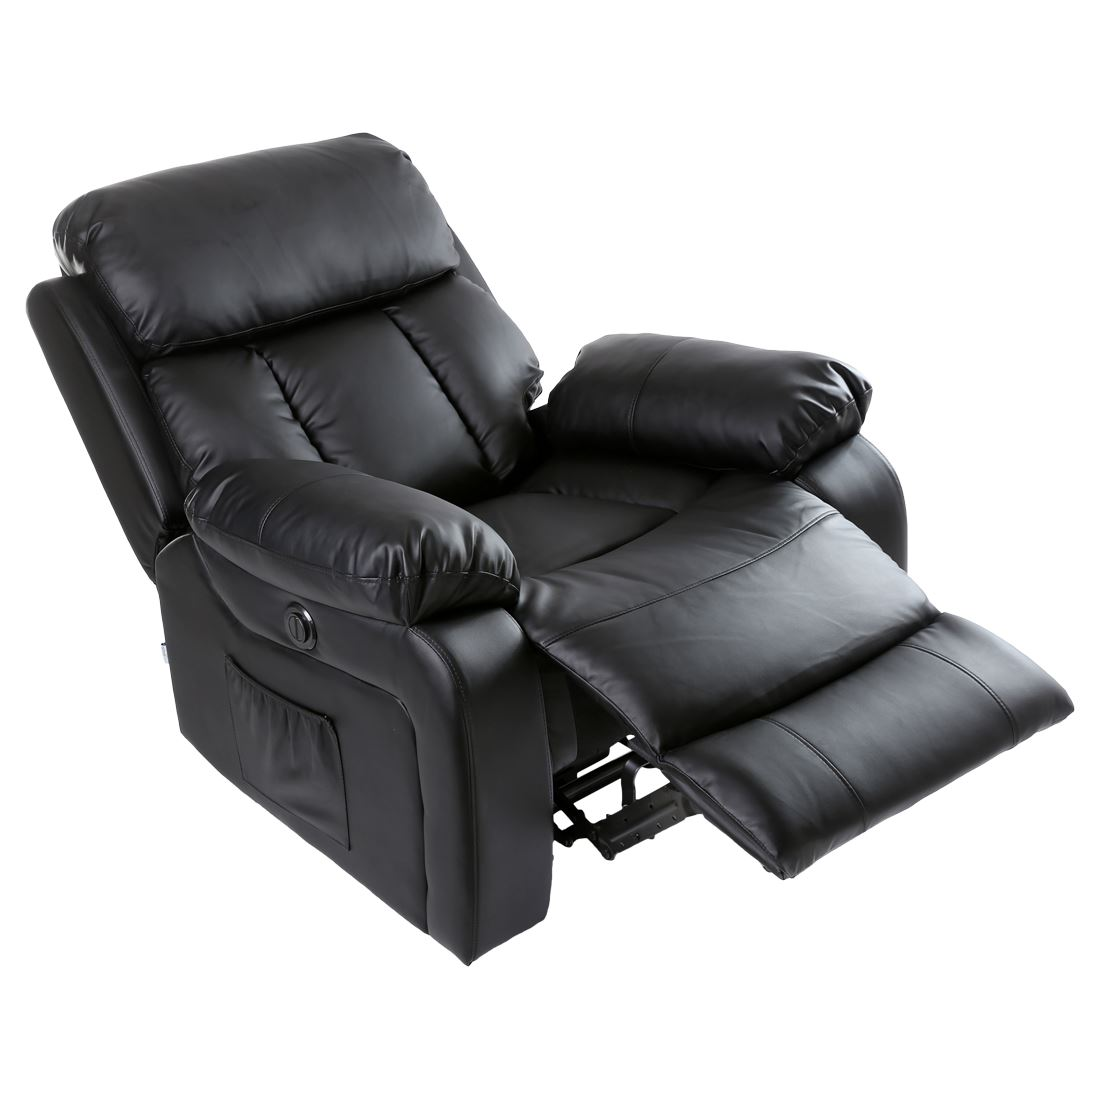 recliner gaming chair kiddies covers for sale in pretoria chester electric heated leather massage